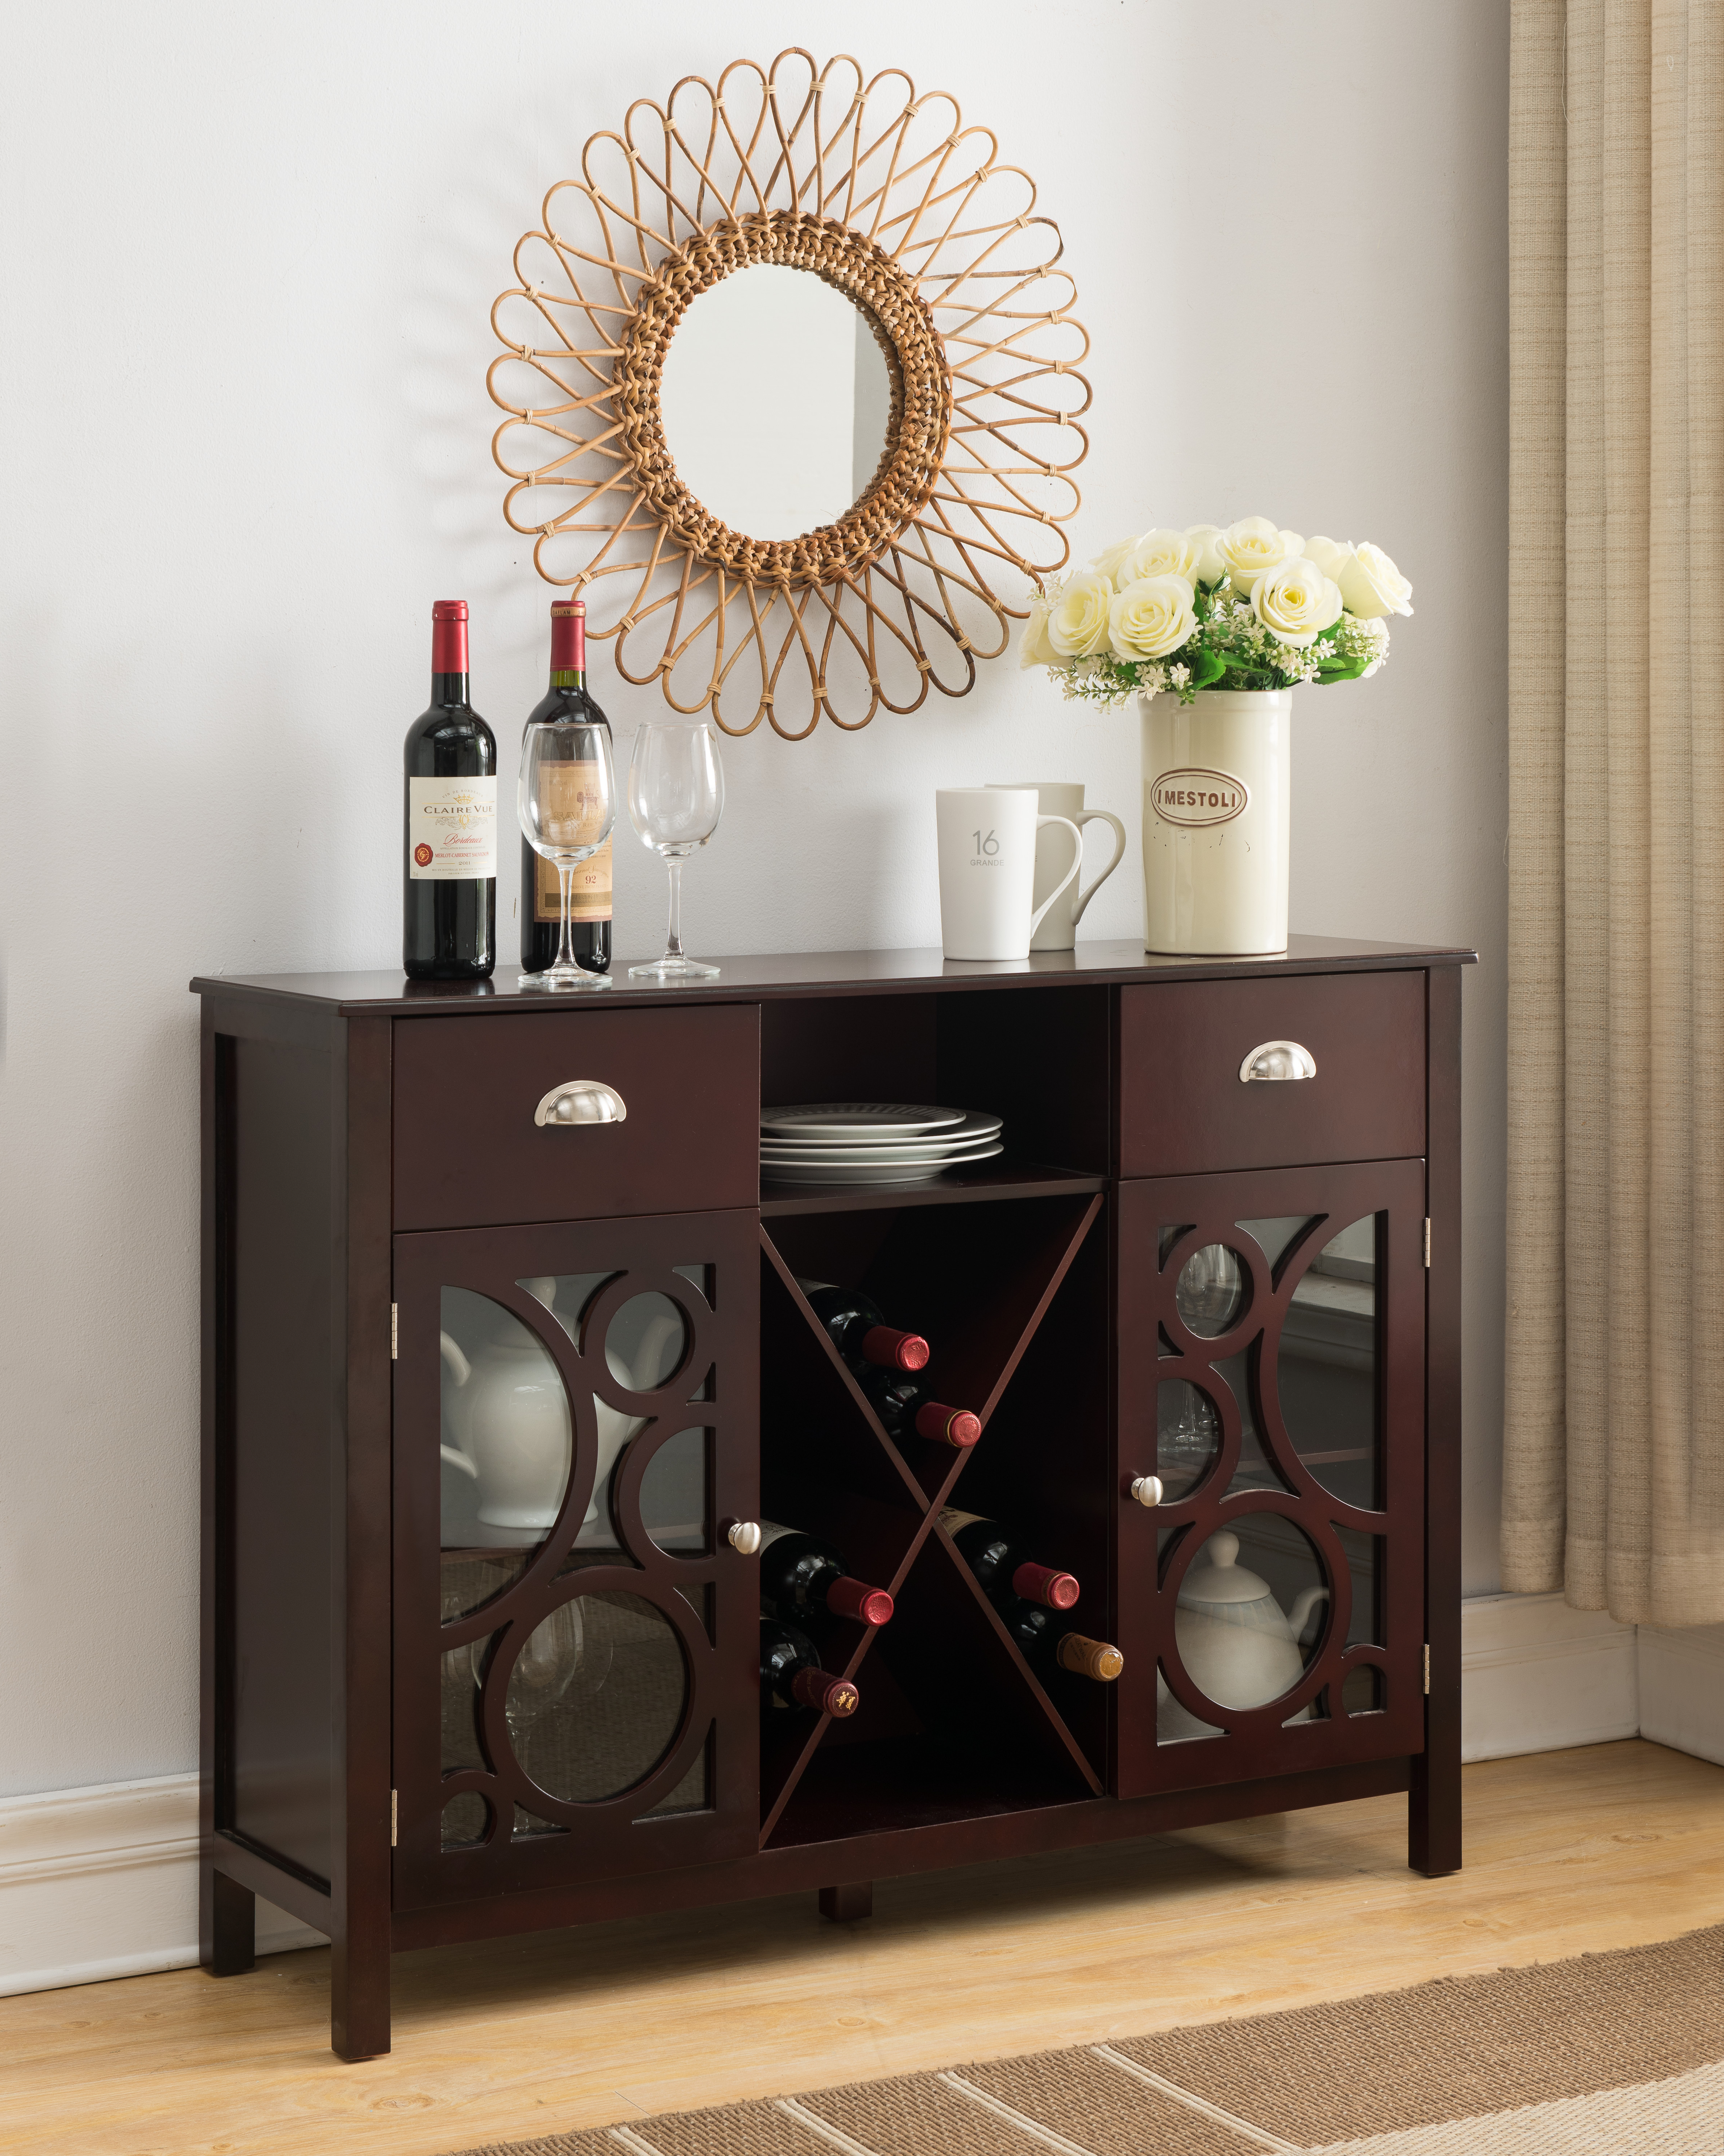 Finn Dark Cherry Wood Contemporary Wine Rack Sideboard Buffet Display  Console Table With Storage Drawers, Glass Cabinet Doors & Shelf For Buffets With Cherry Finish (View 17 of 20)